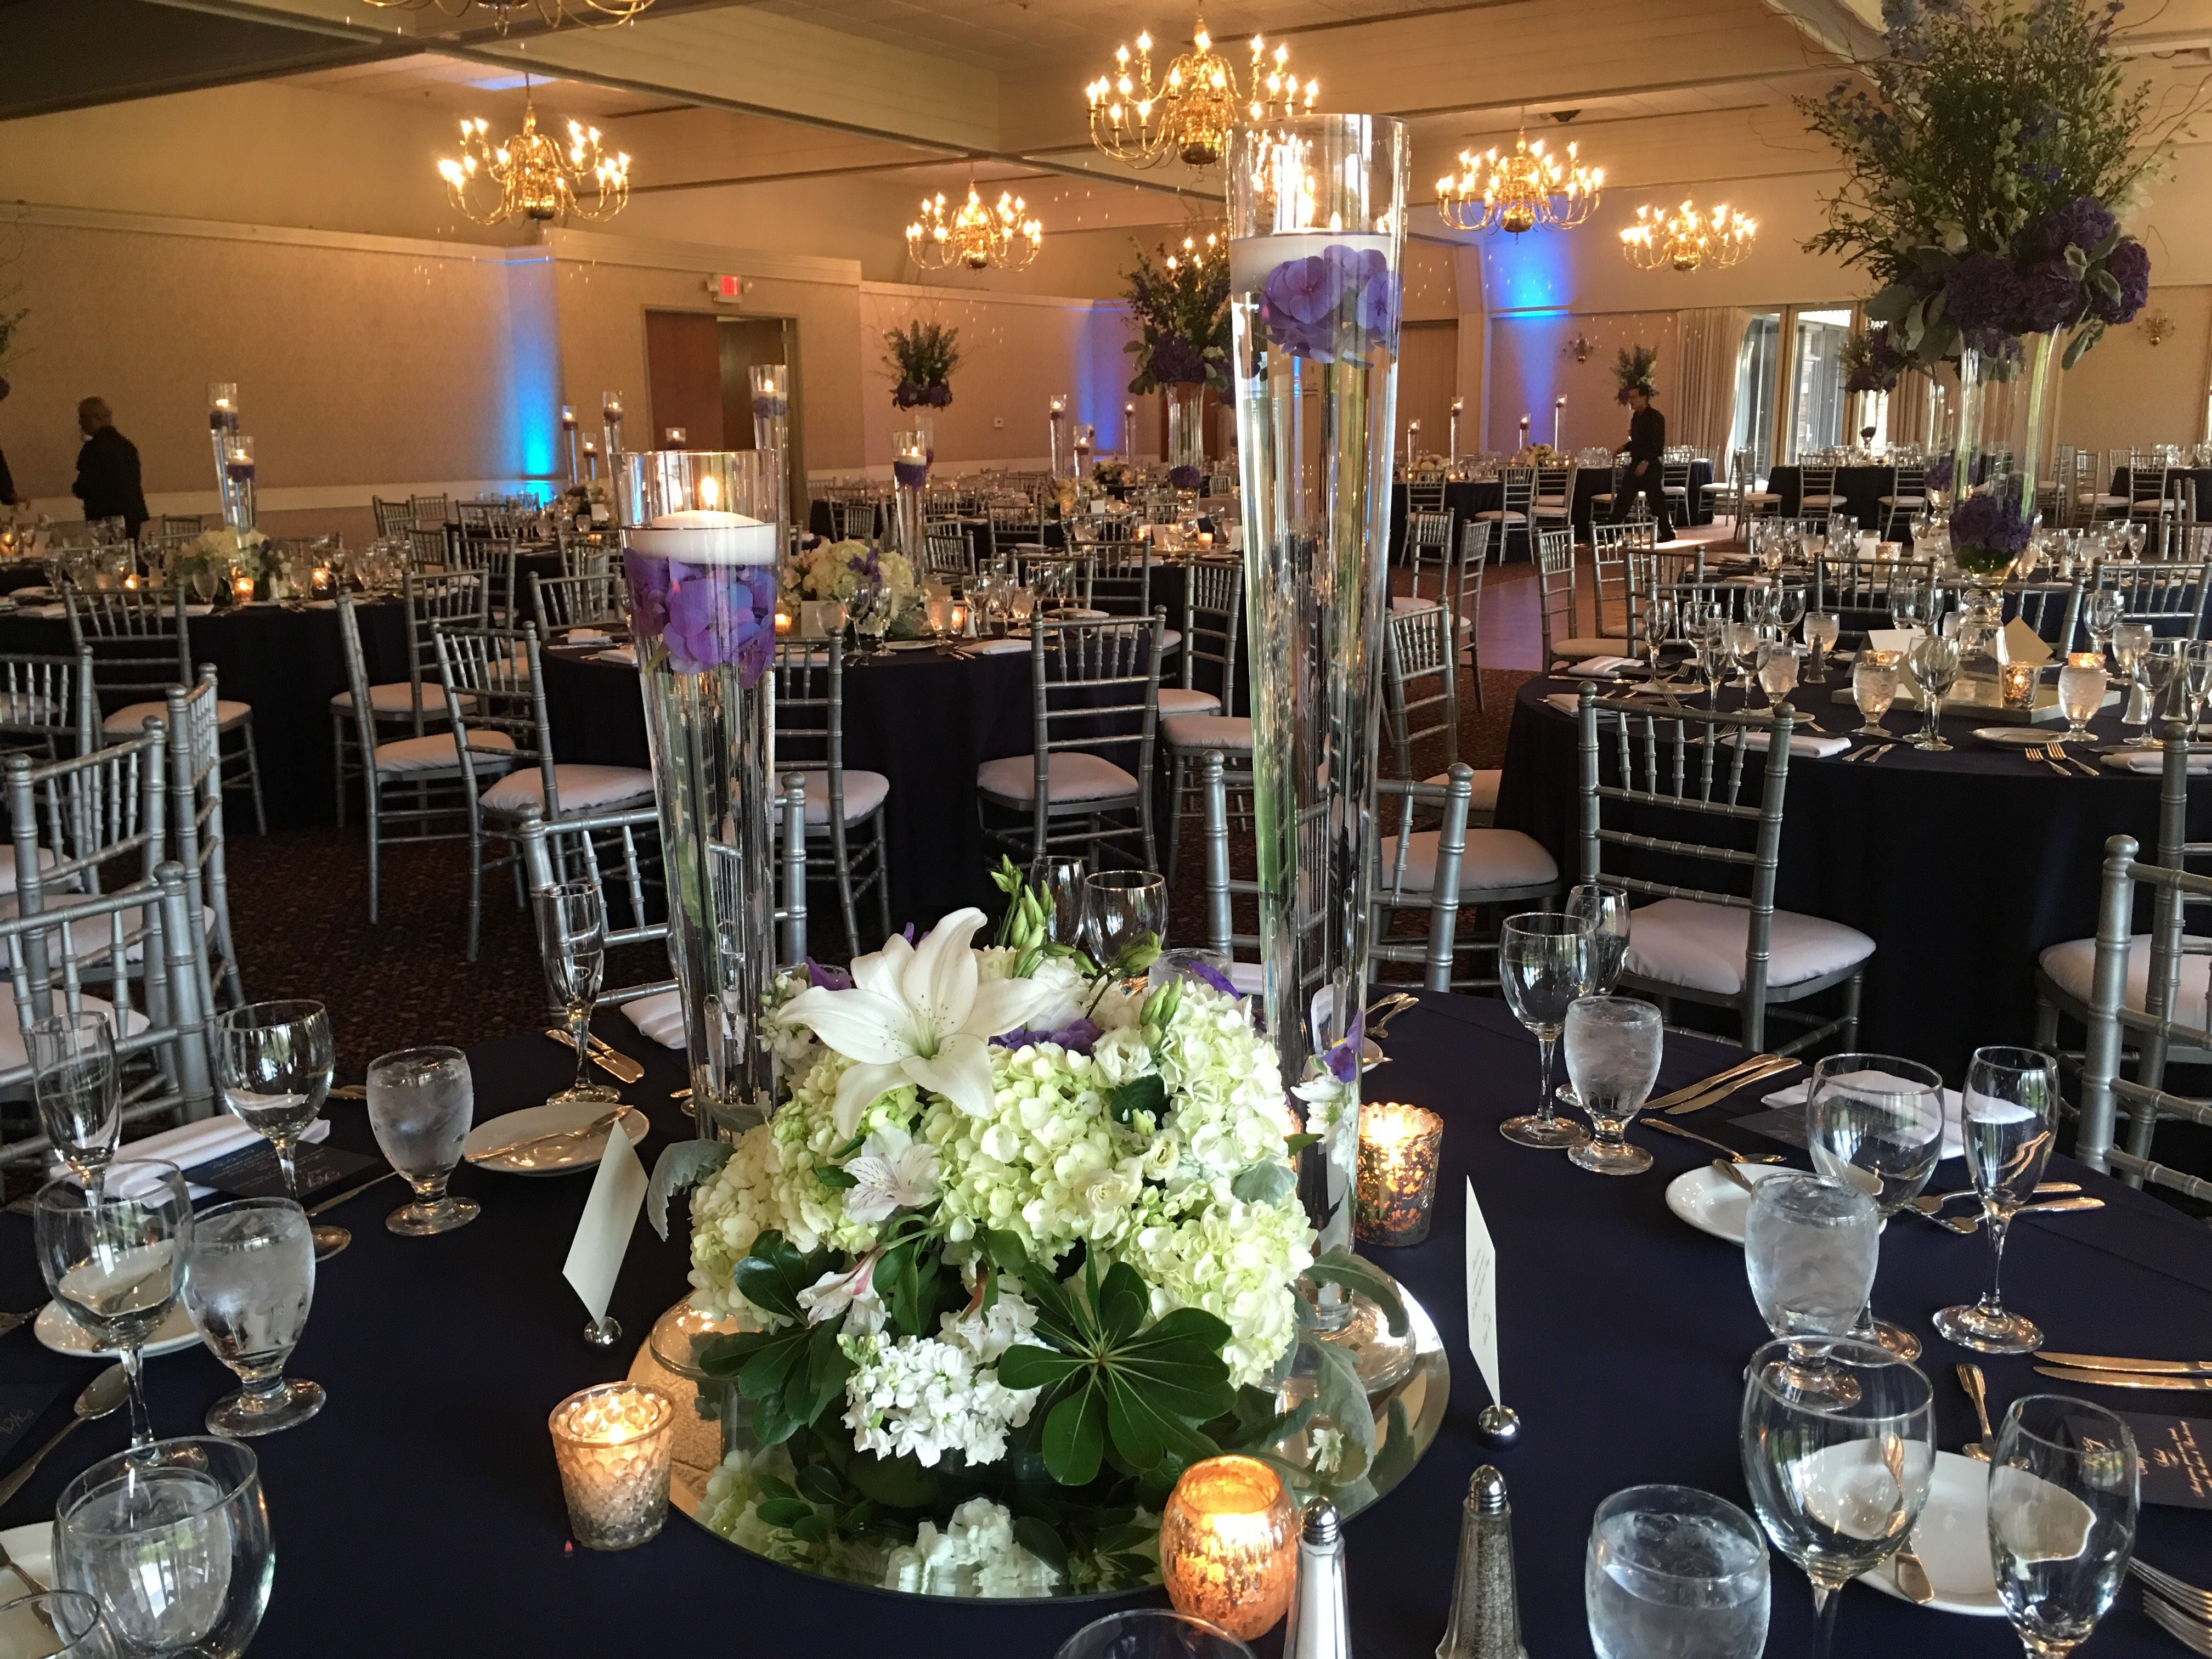 Artquest low table design for the may th wedding at hpcc check out